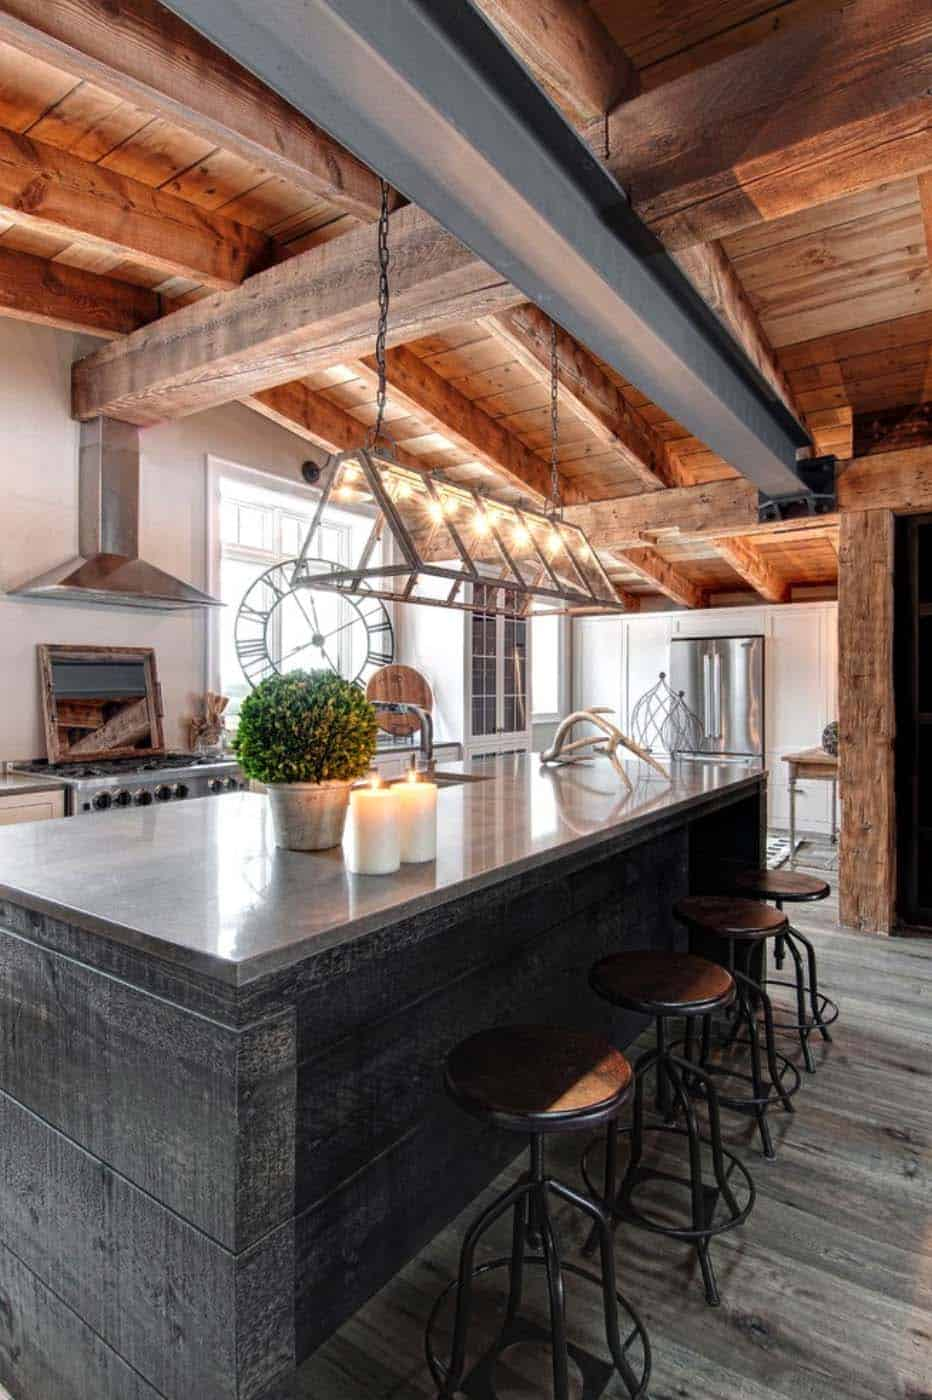 Luxury canadian home reveals splendid rustic modern aesthetic for Modern rustic home plans